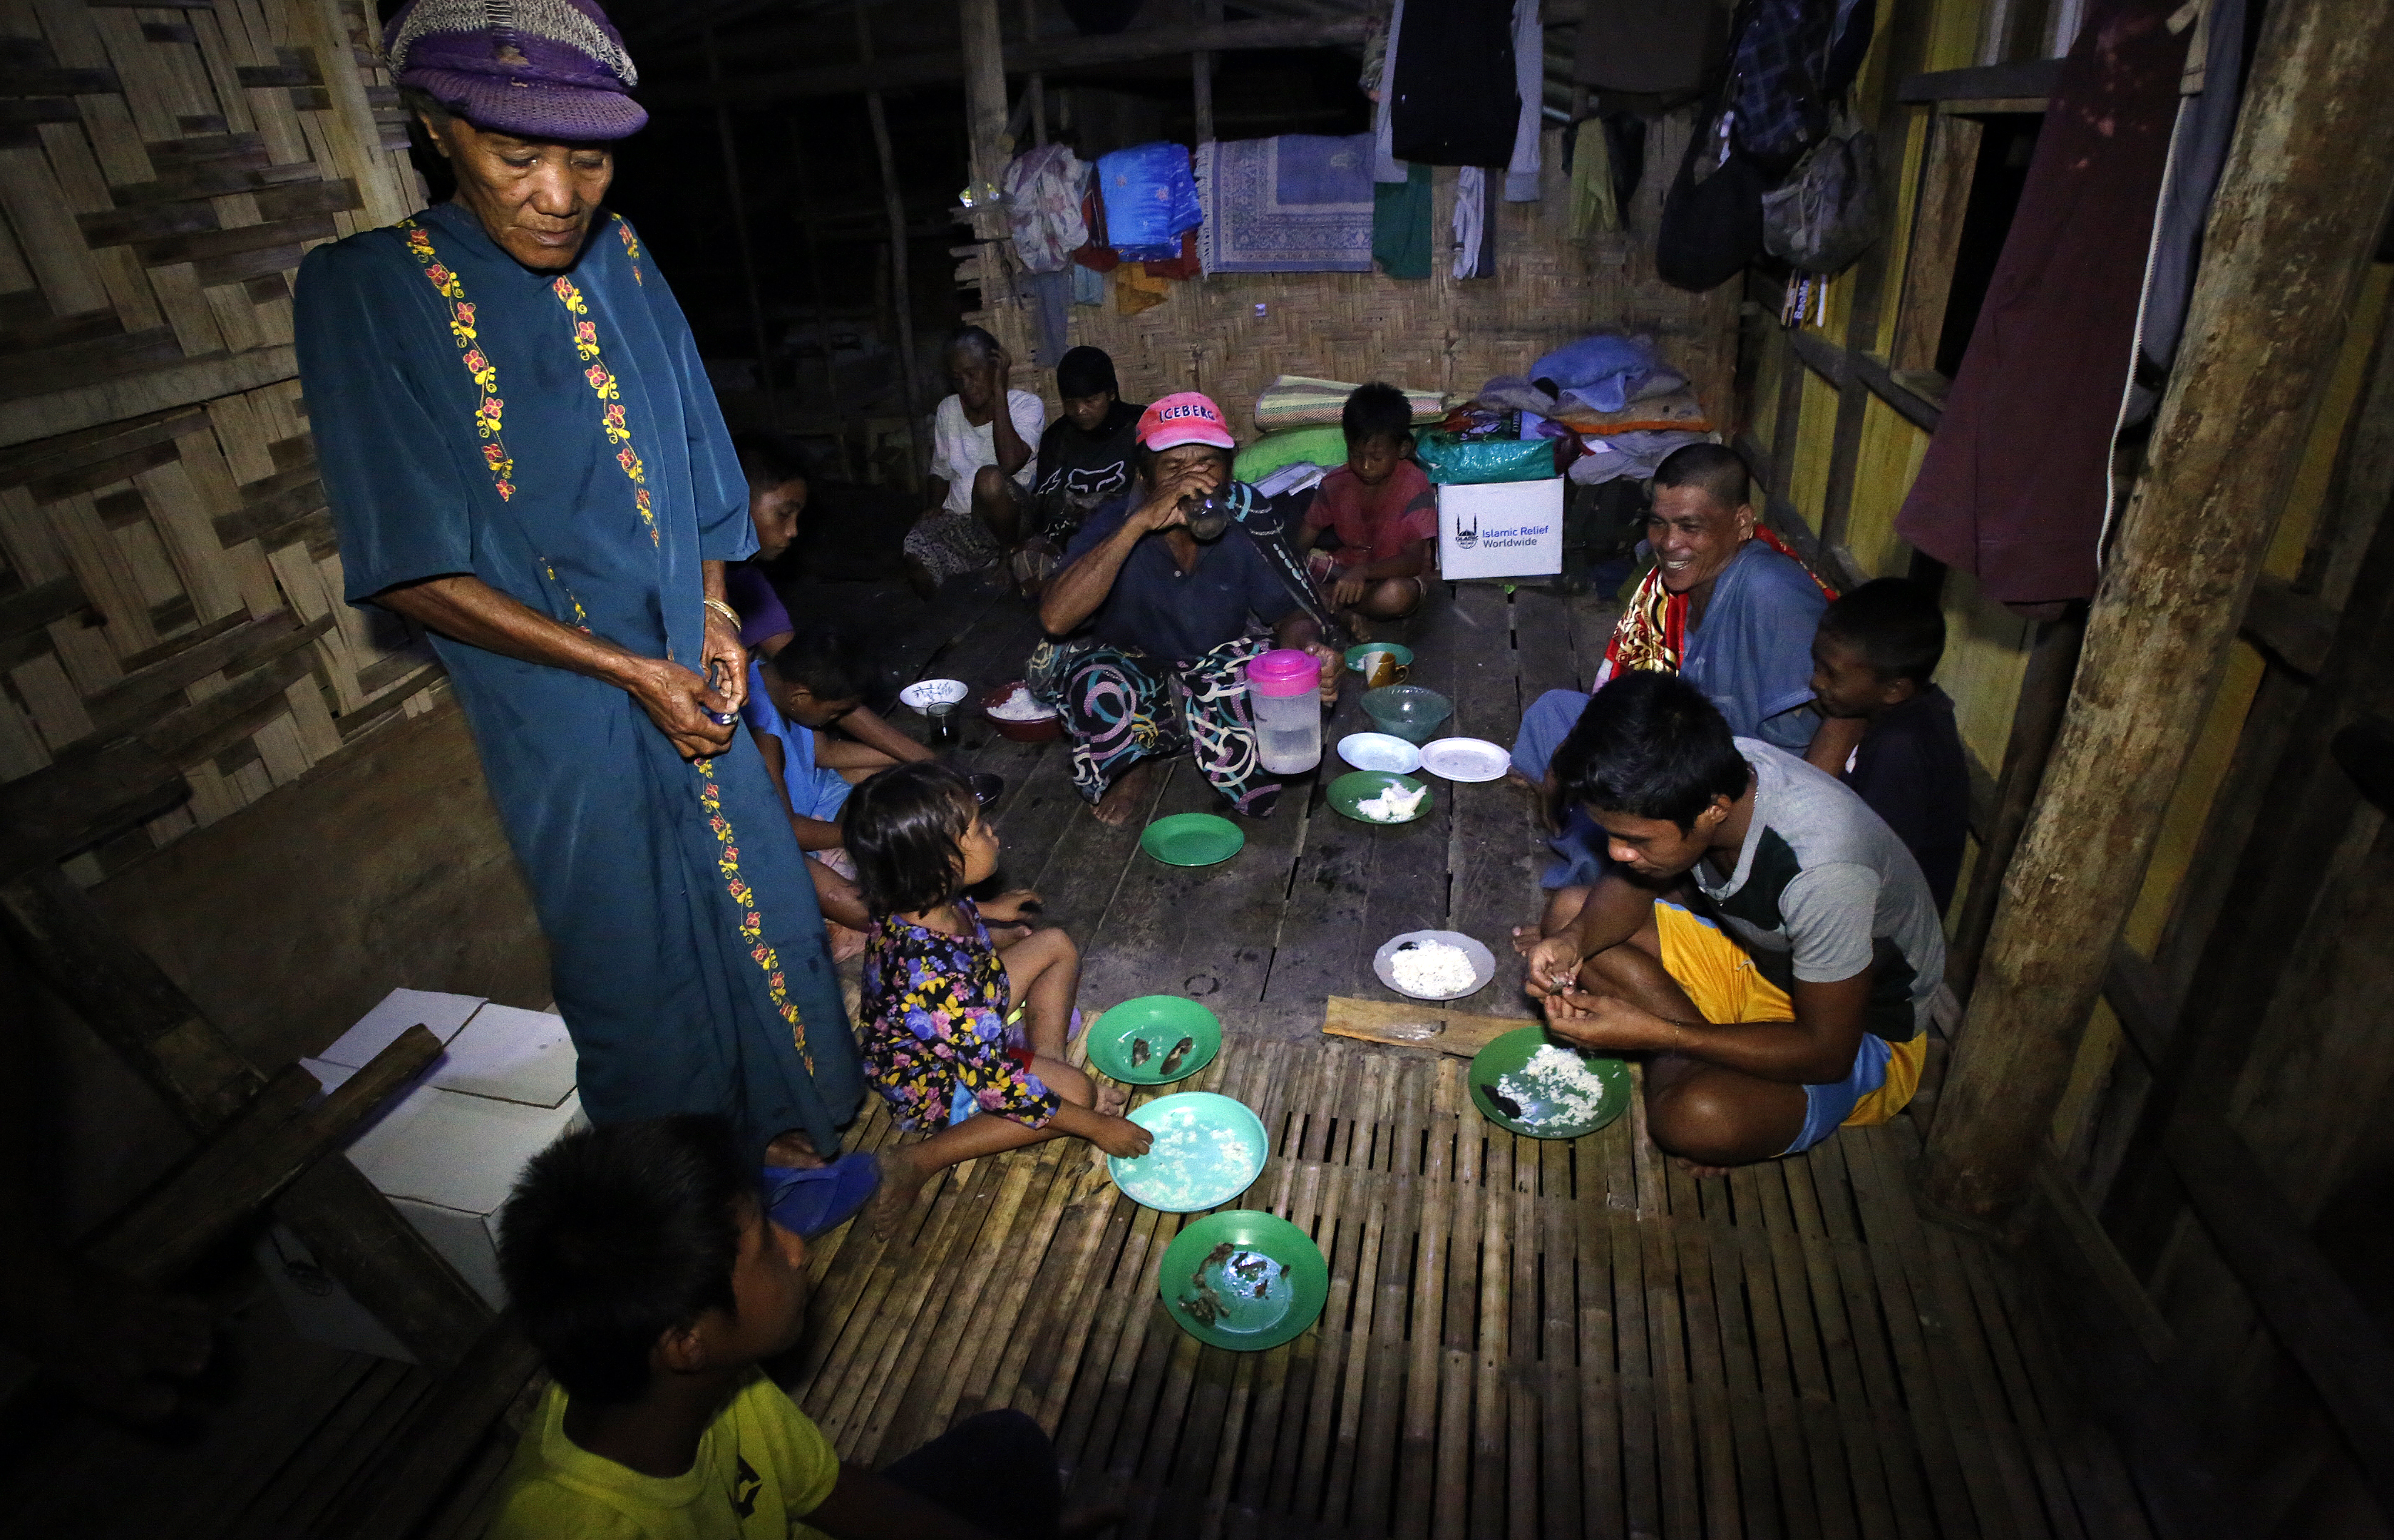 Imam Guiamed Nur sits with his neighbours in their community hut to break fast together.